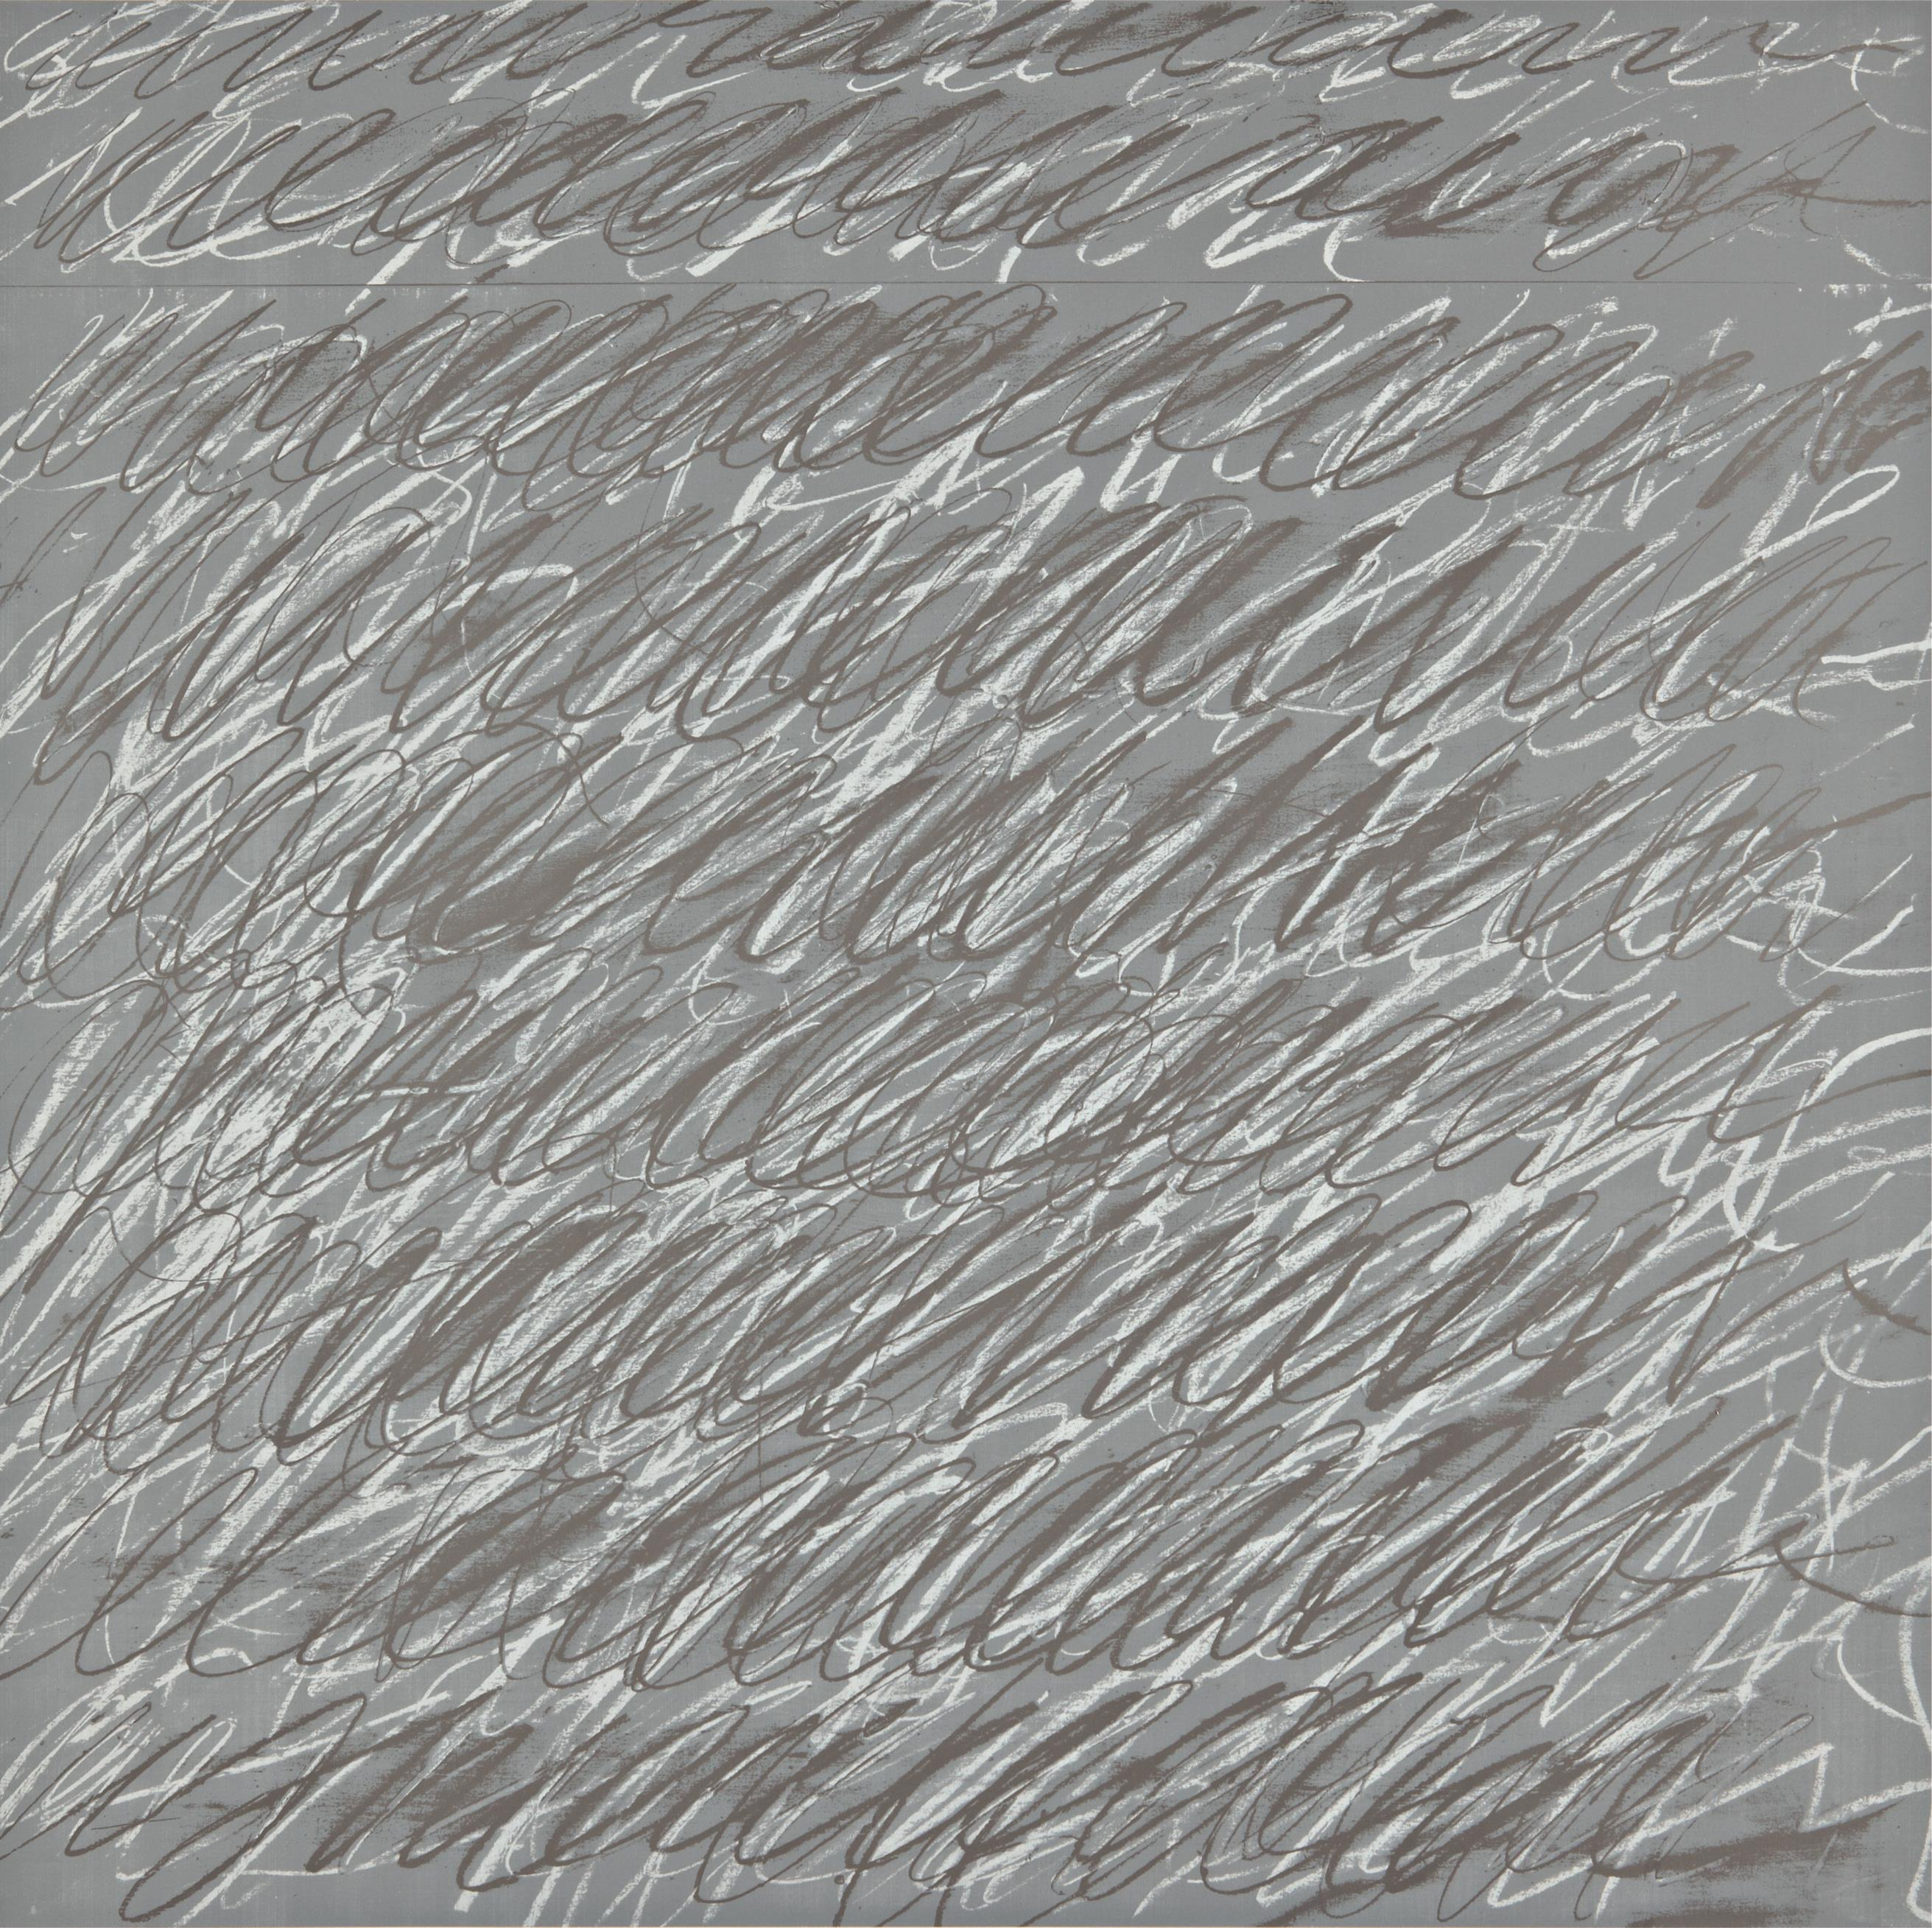 Cy Twombly - From On The Bowery